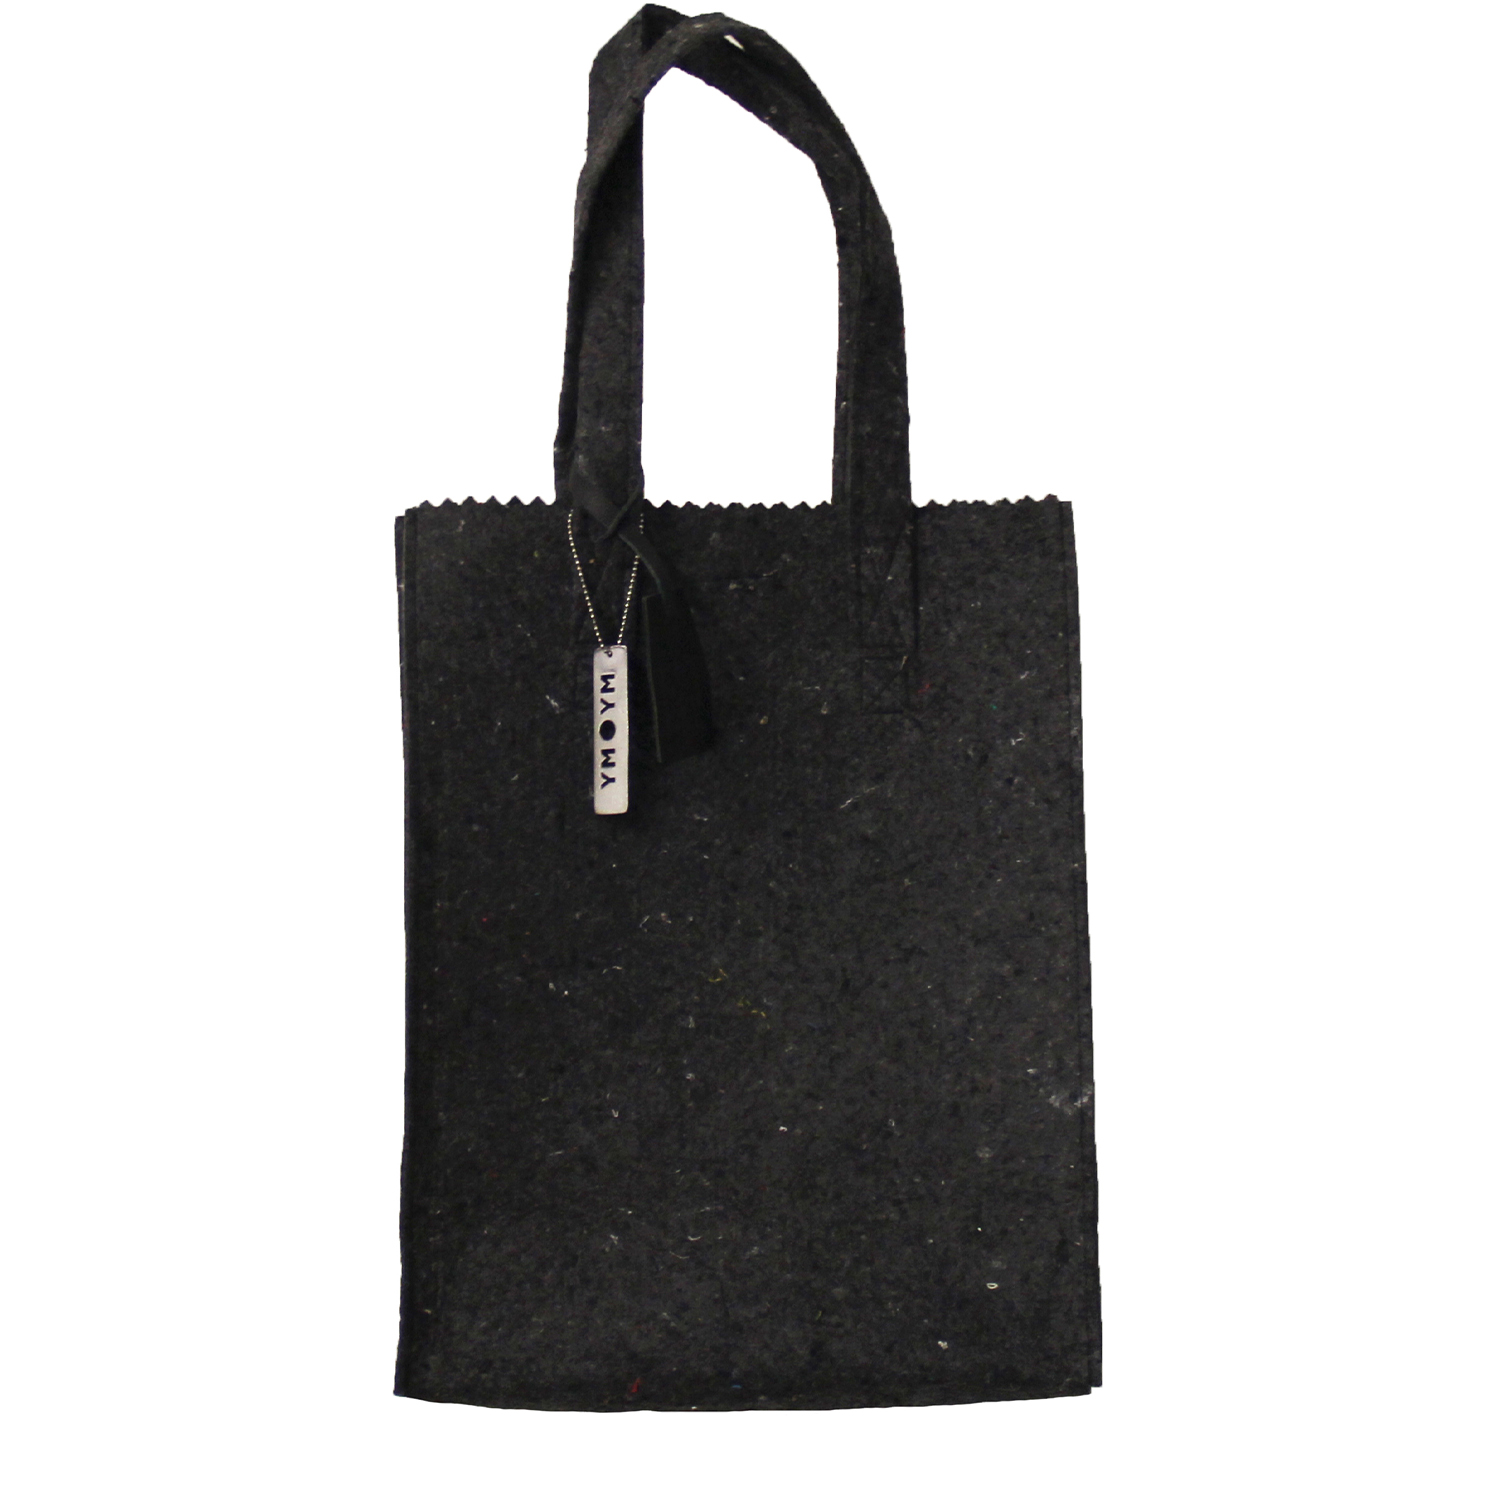 MY PAPER BAG Long handle – felt black fashion